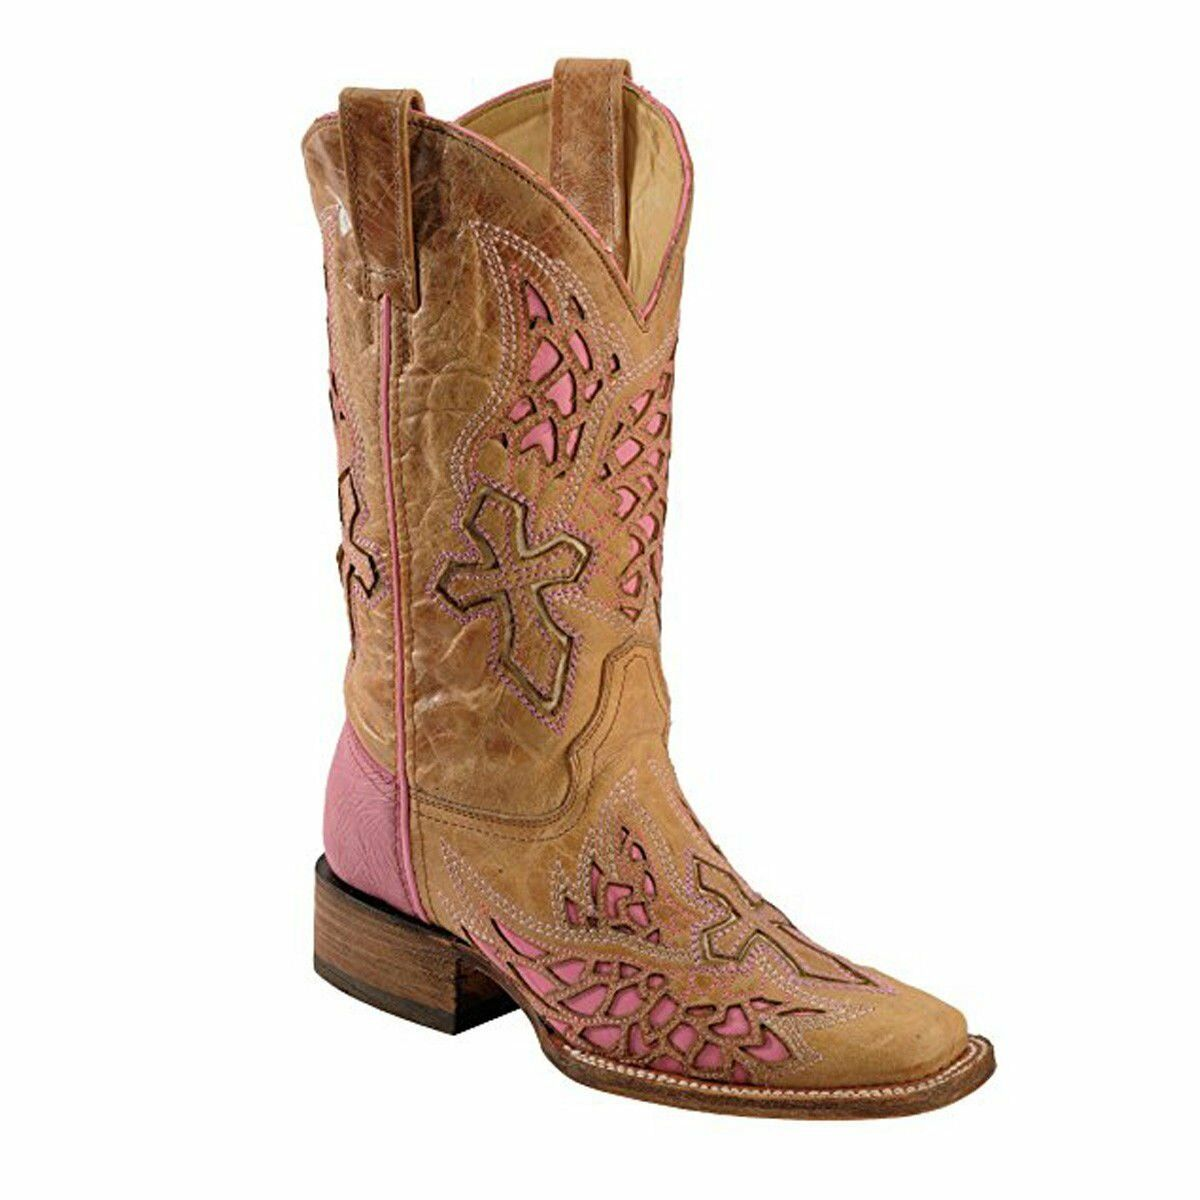 Corral Women's Side Wing And Cross Fashion Square Toe Boots A2645